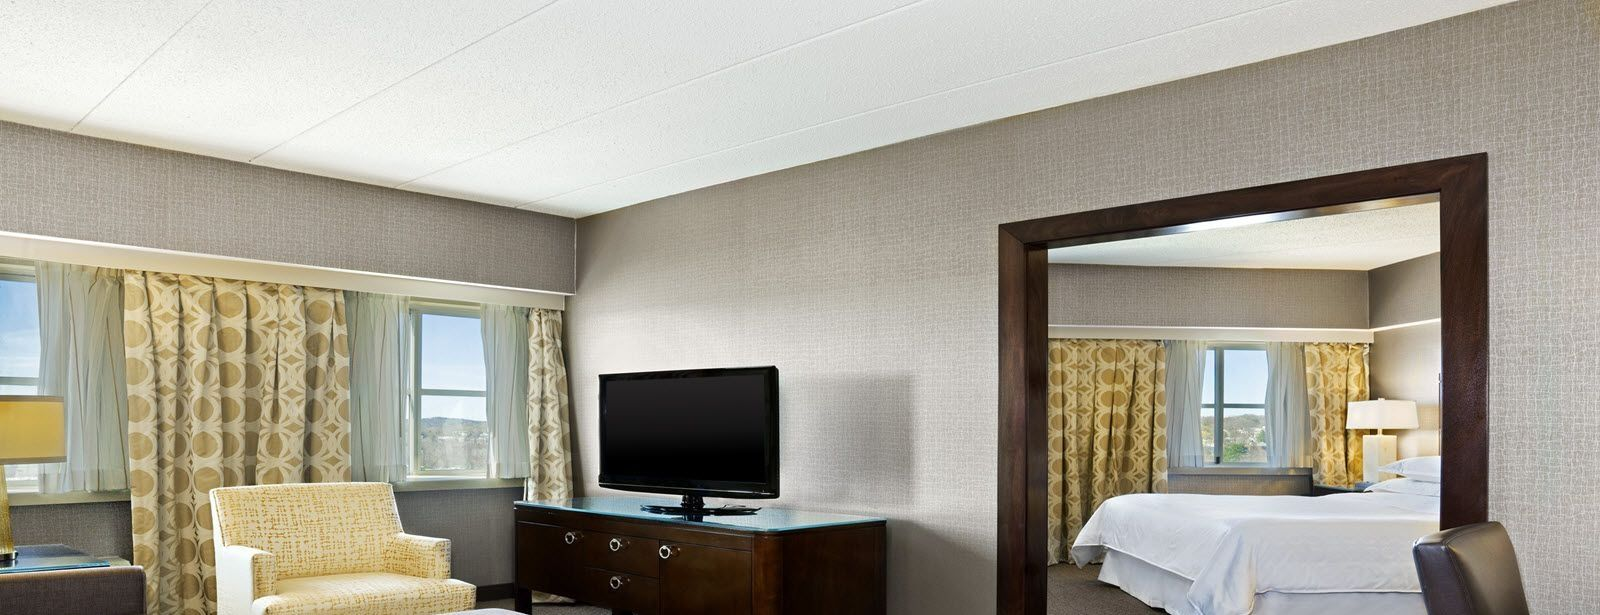 Sheraton Needham Hotel King Room Suite